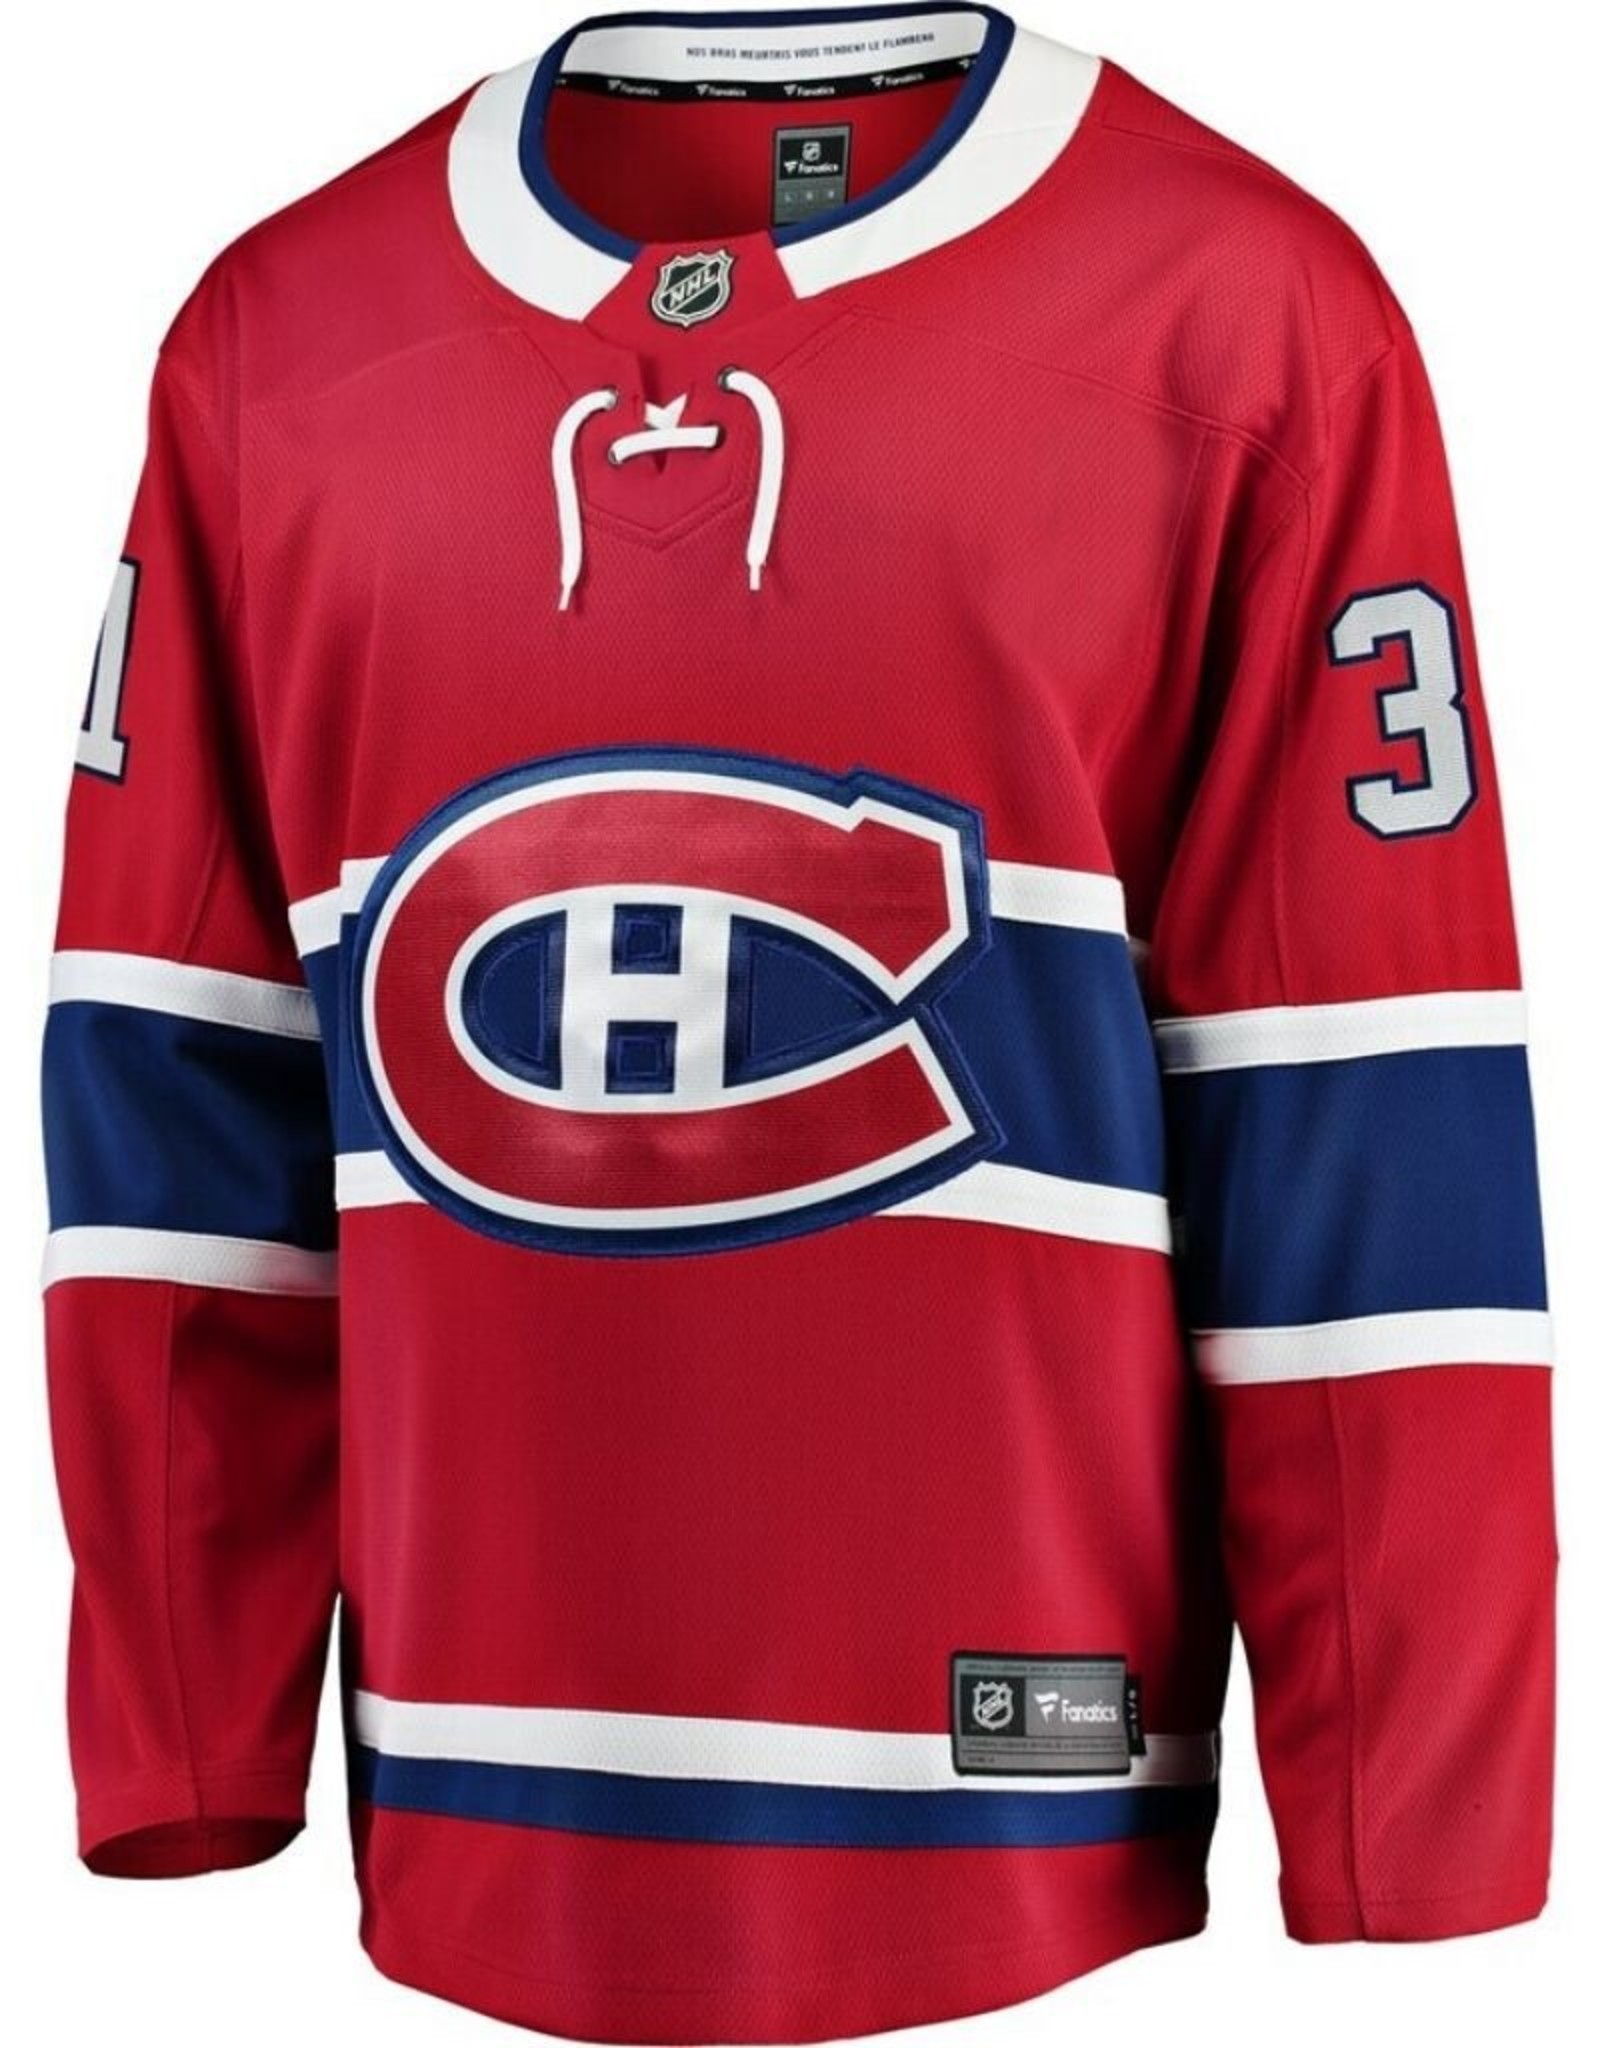 Fanatics Fanatics Adult Breakaway Montreal Canadiens Price Jersey Red